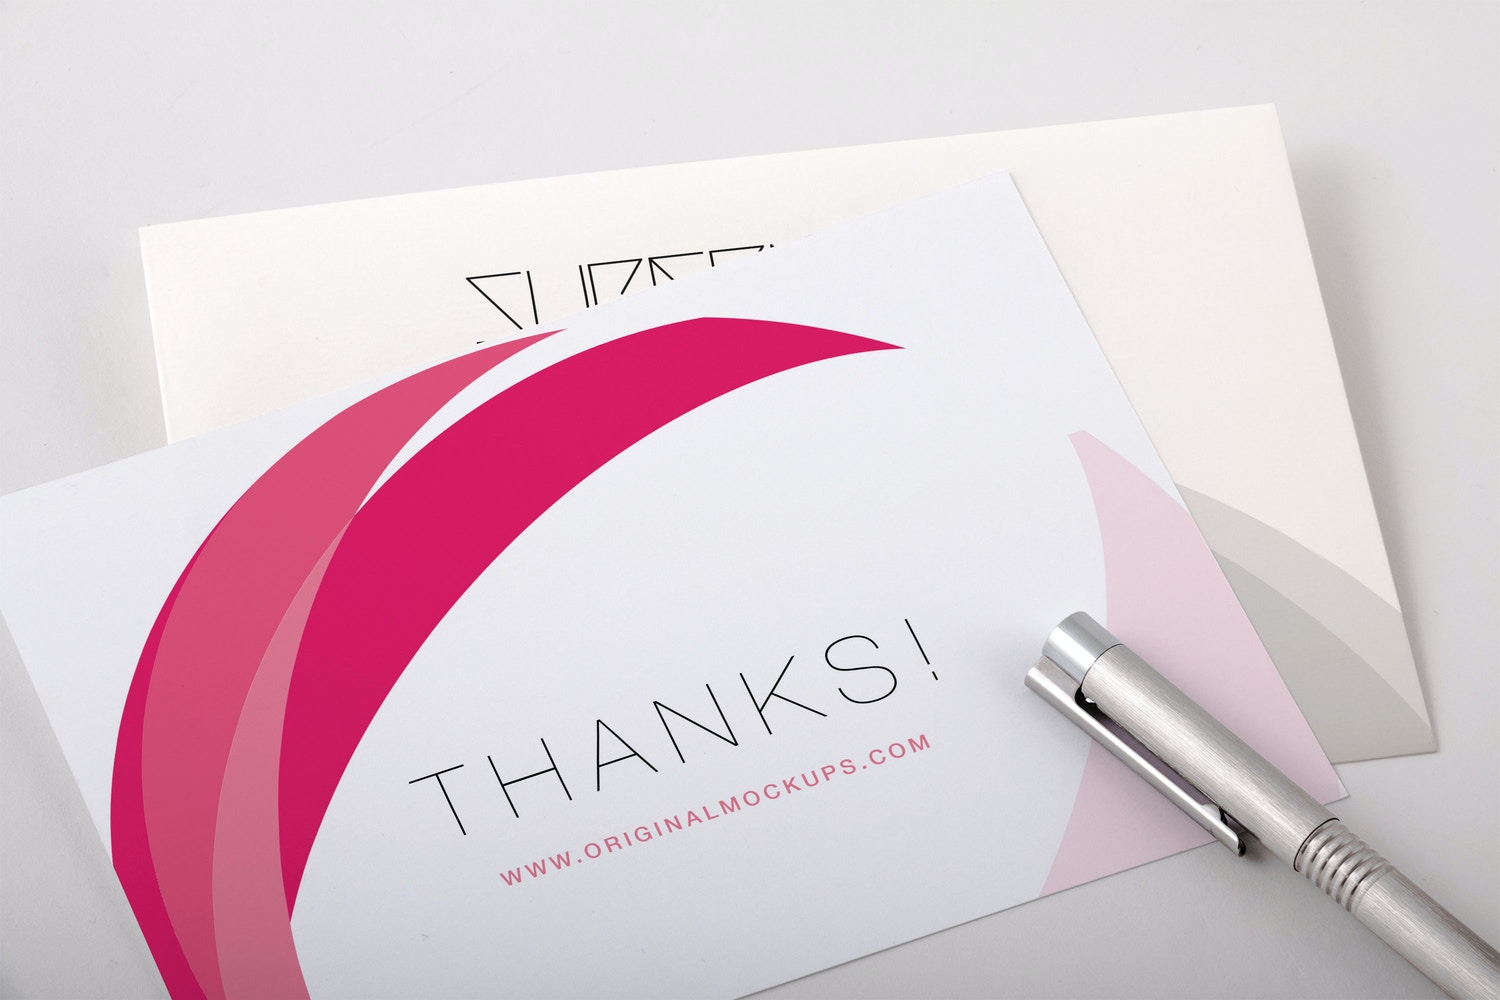 Thank You Card PSD Mockup 02 by Original Mockups on Original Mockups